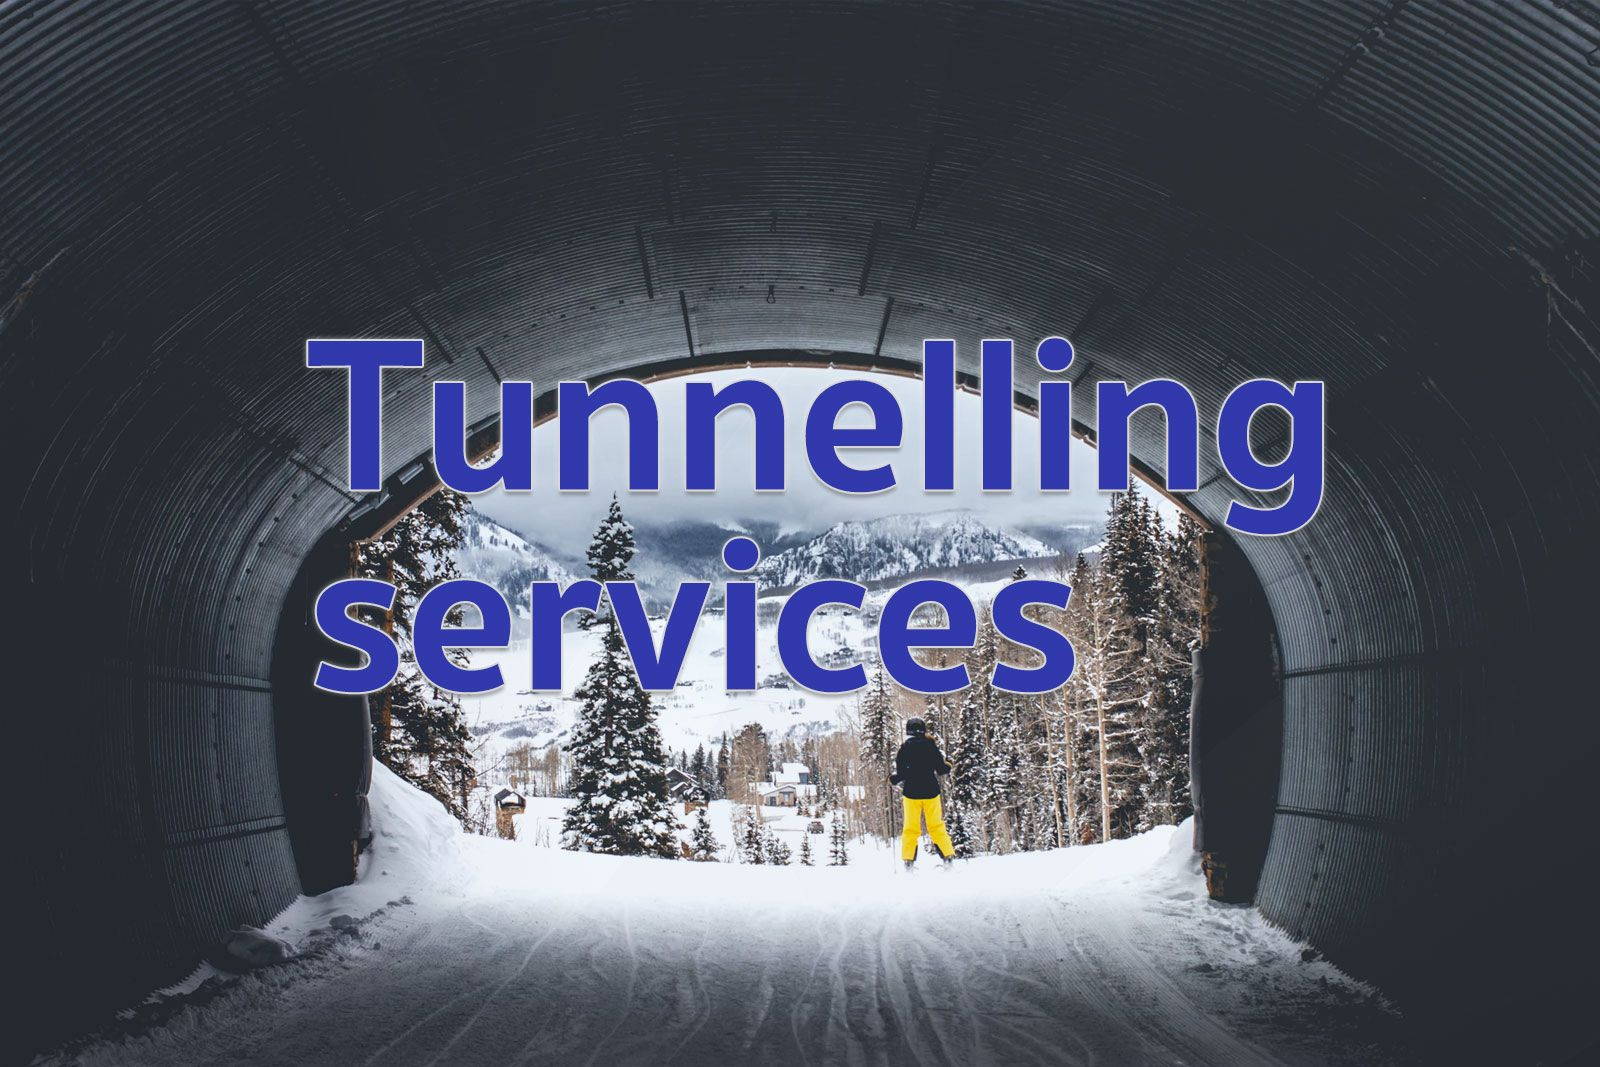 Tunnelling services